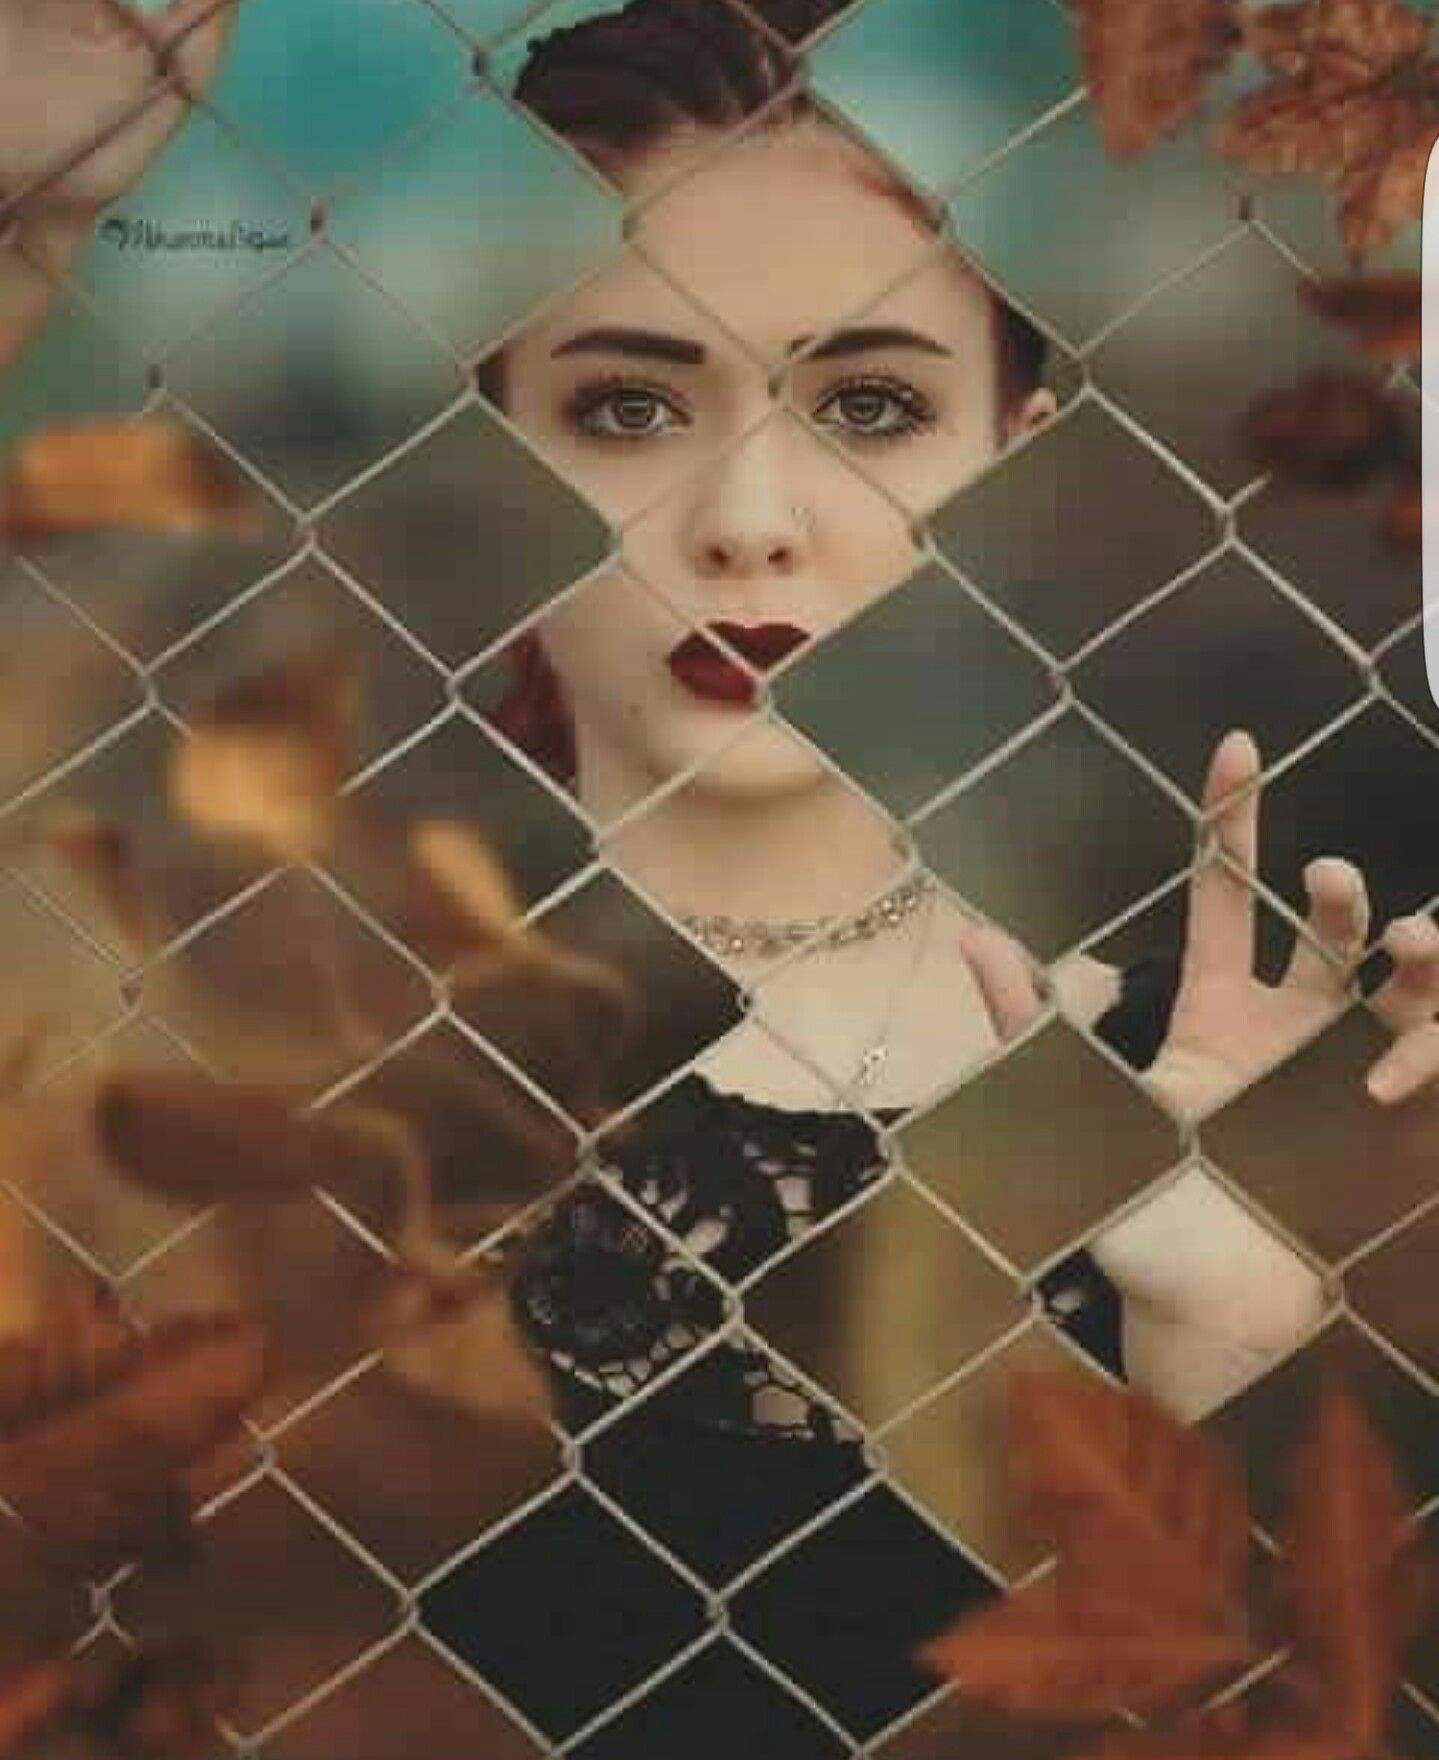 Pin by sweet heart on album pinterest photoshop images photoshop images photoshop tutorial creative photography art photography portrait ideas portfolio review photo art surrealism telling stories baditri Choice Image